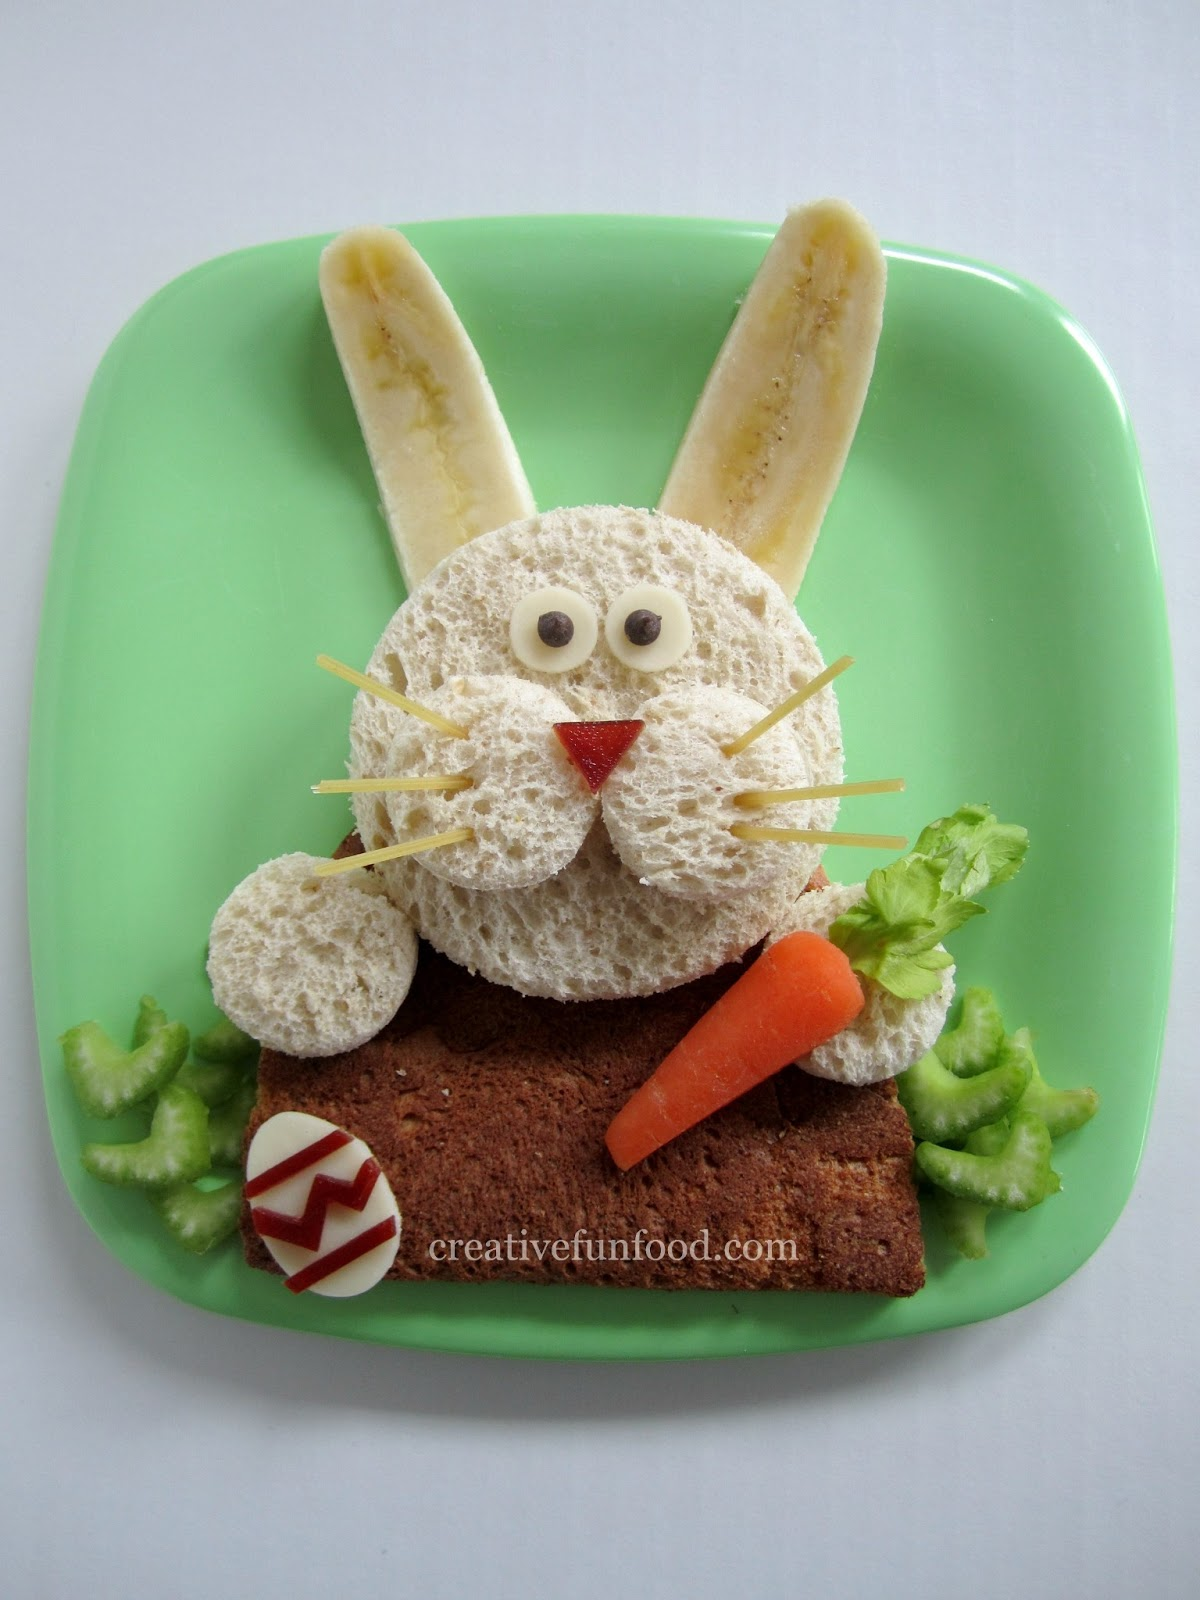 Easter Bunny Lunch And Over 20 Creative Easter Food And Craft Ideas